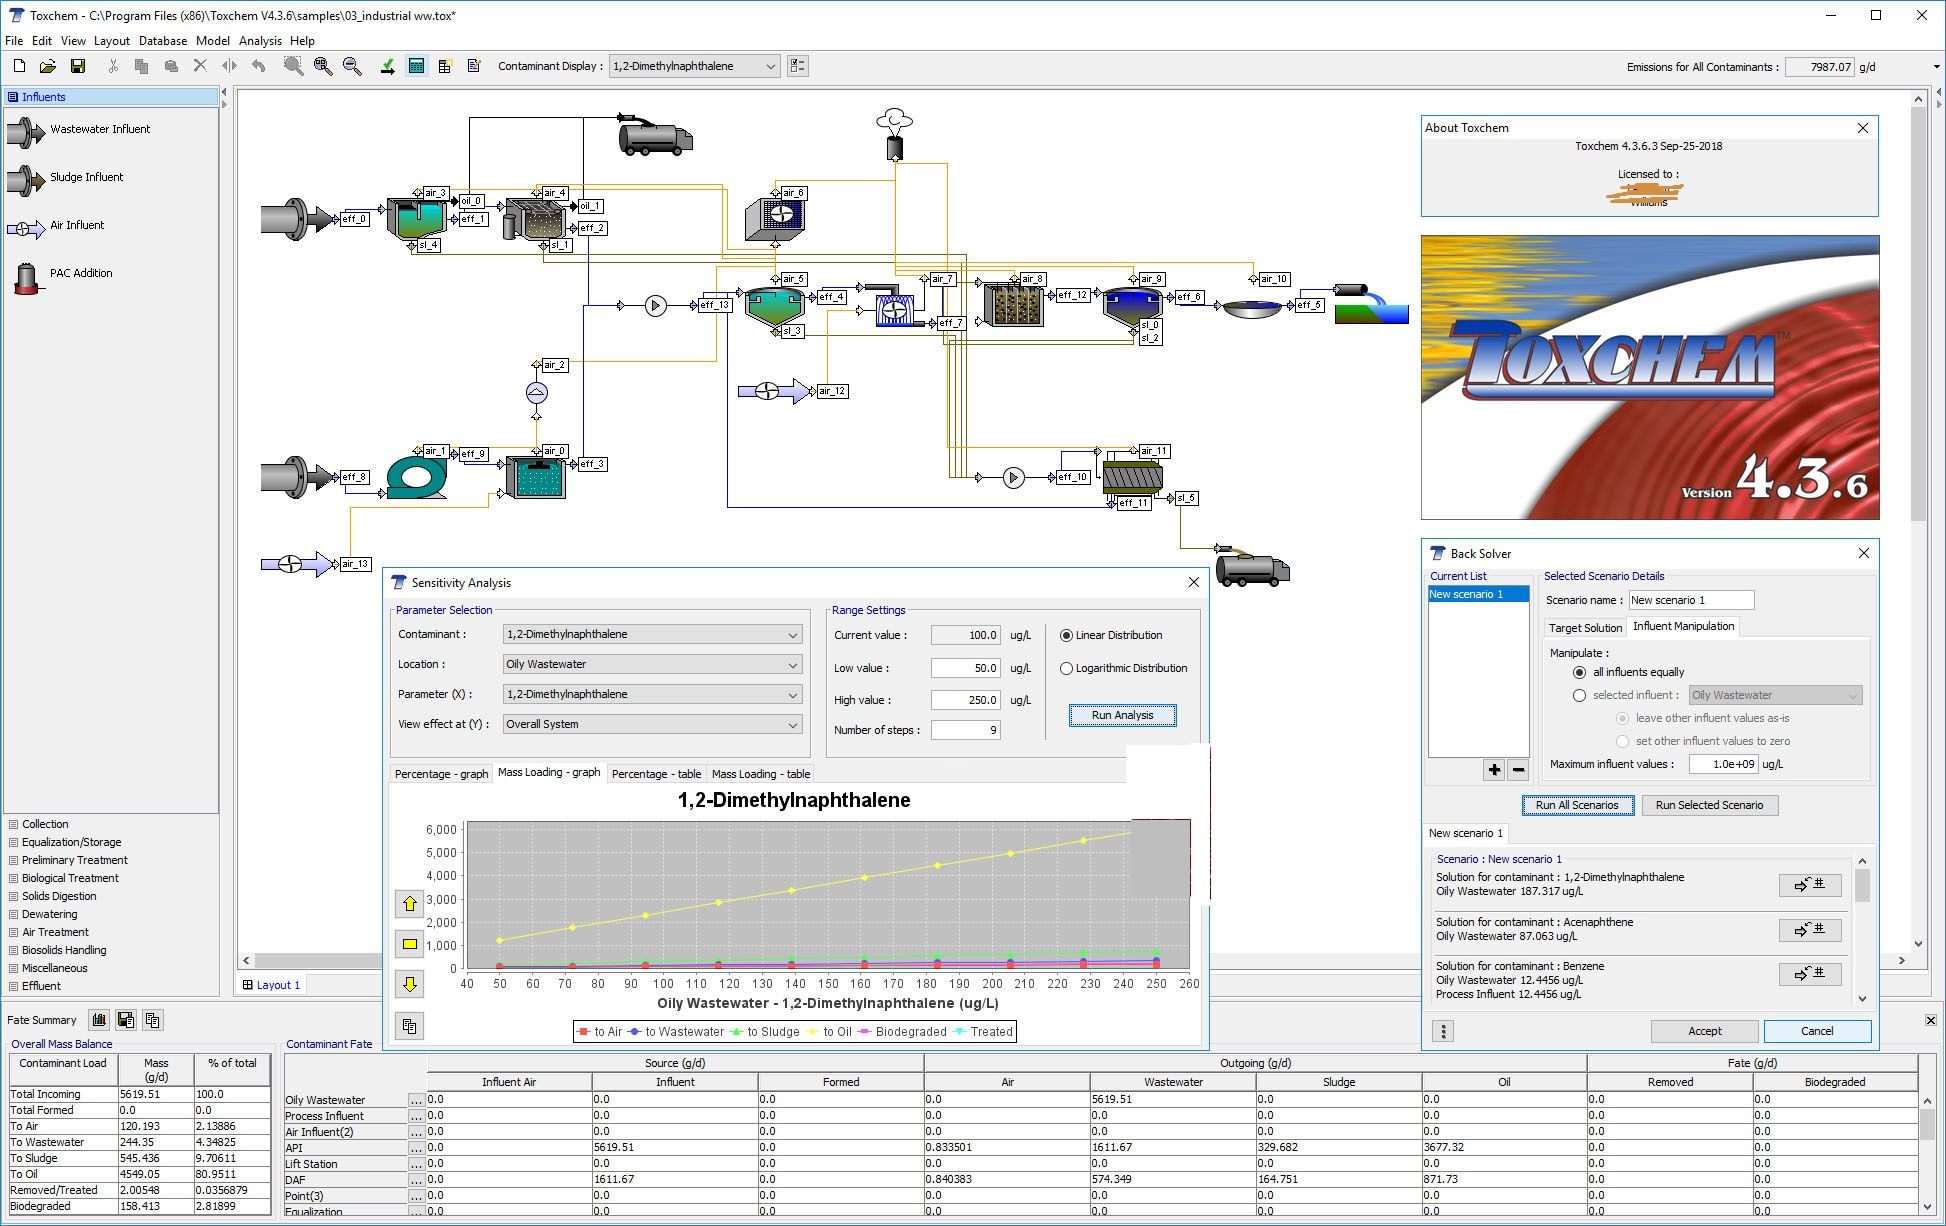 Working with Hydromantis Toxchem 4.3.6 full license